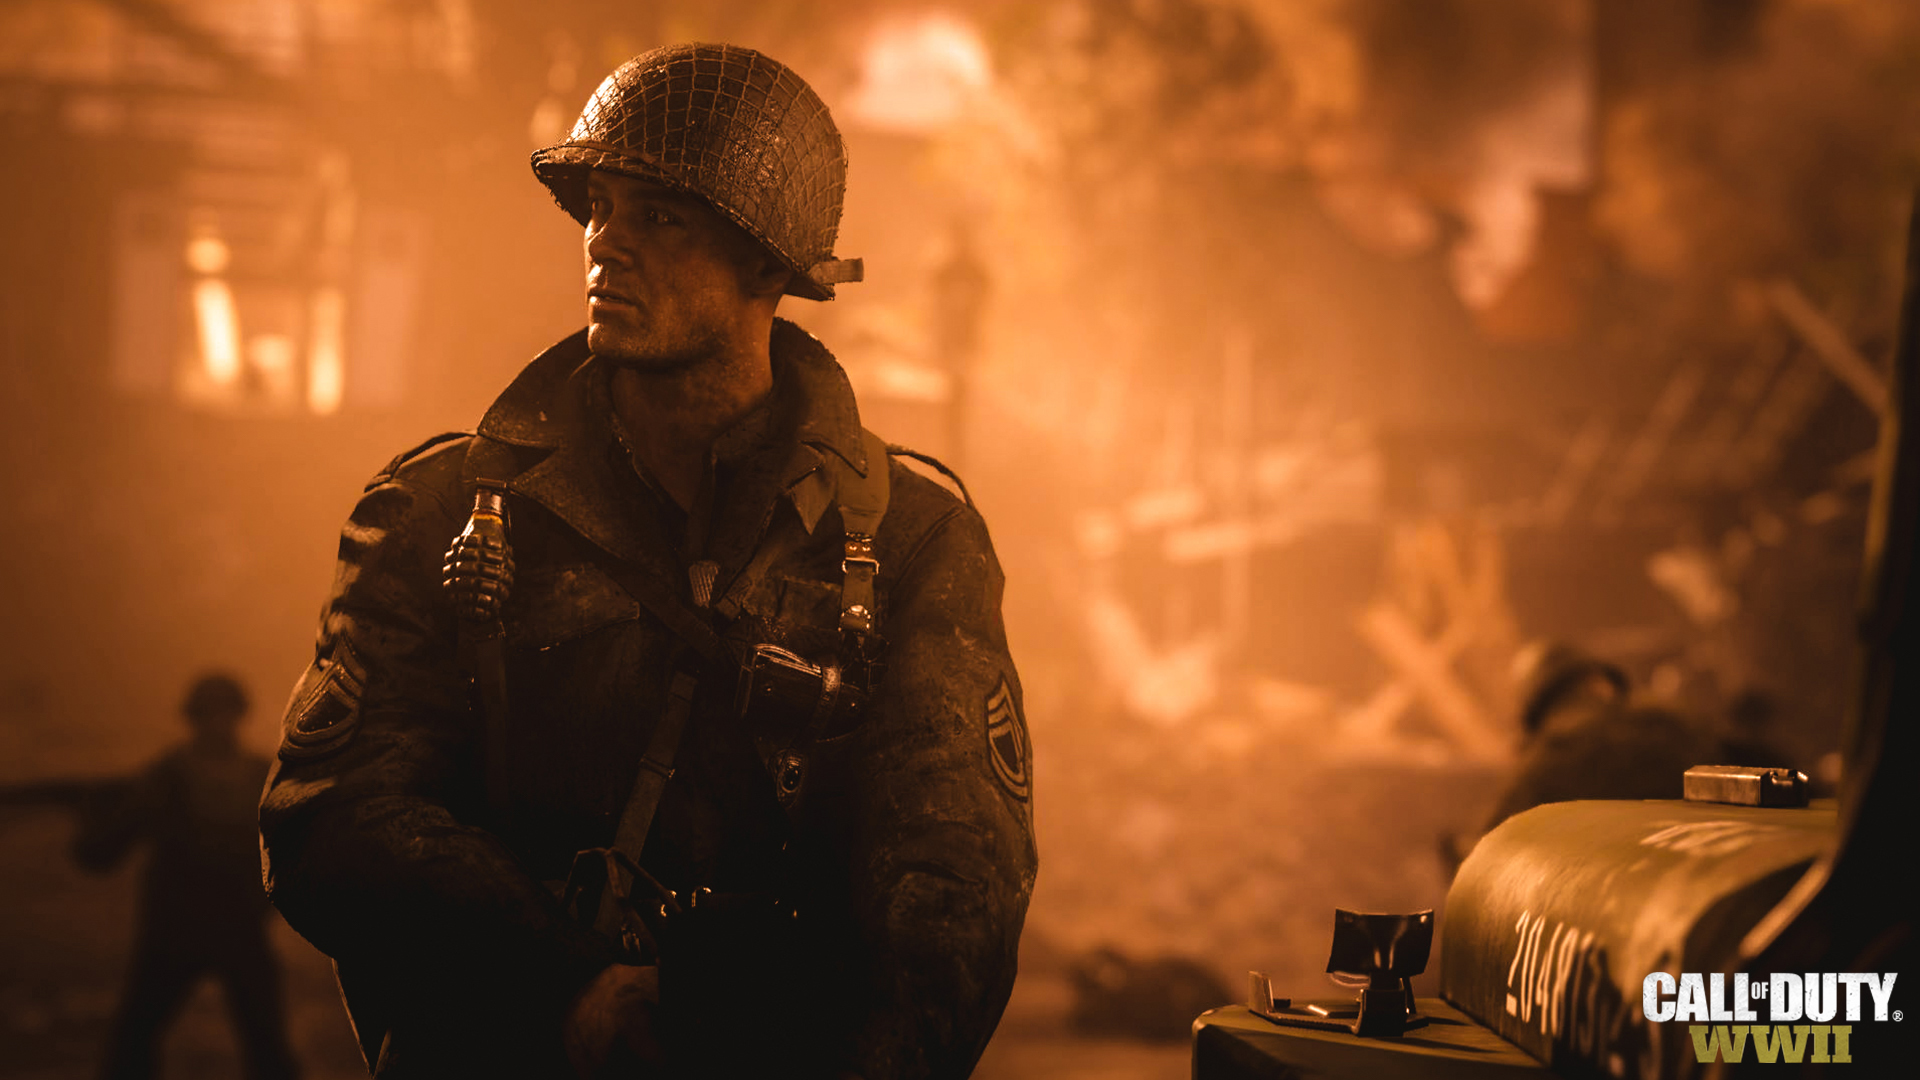 Watch Call of Duty: WWII global livestream right here at 6pm